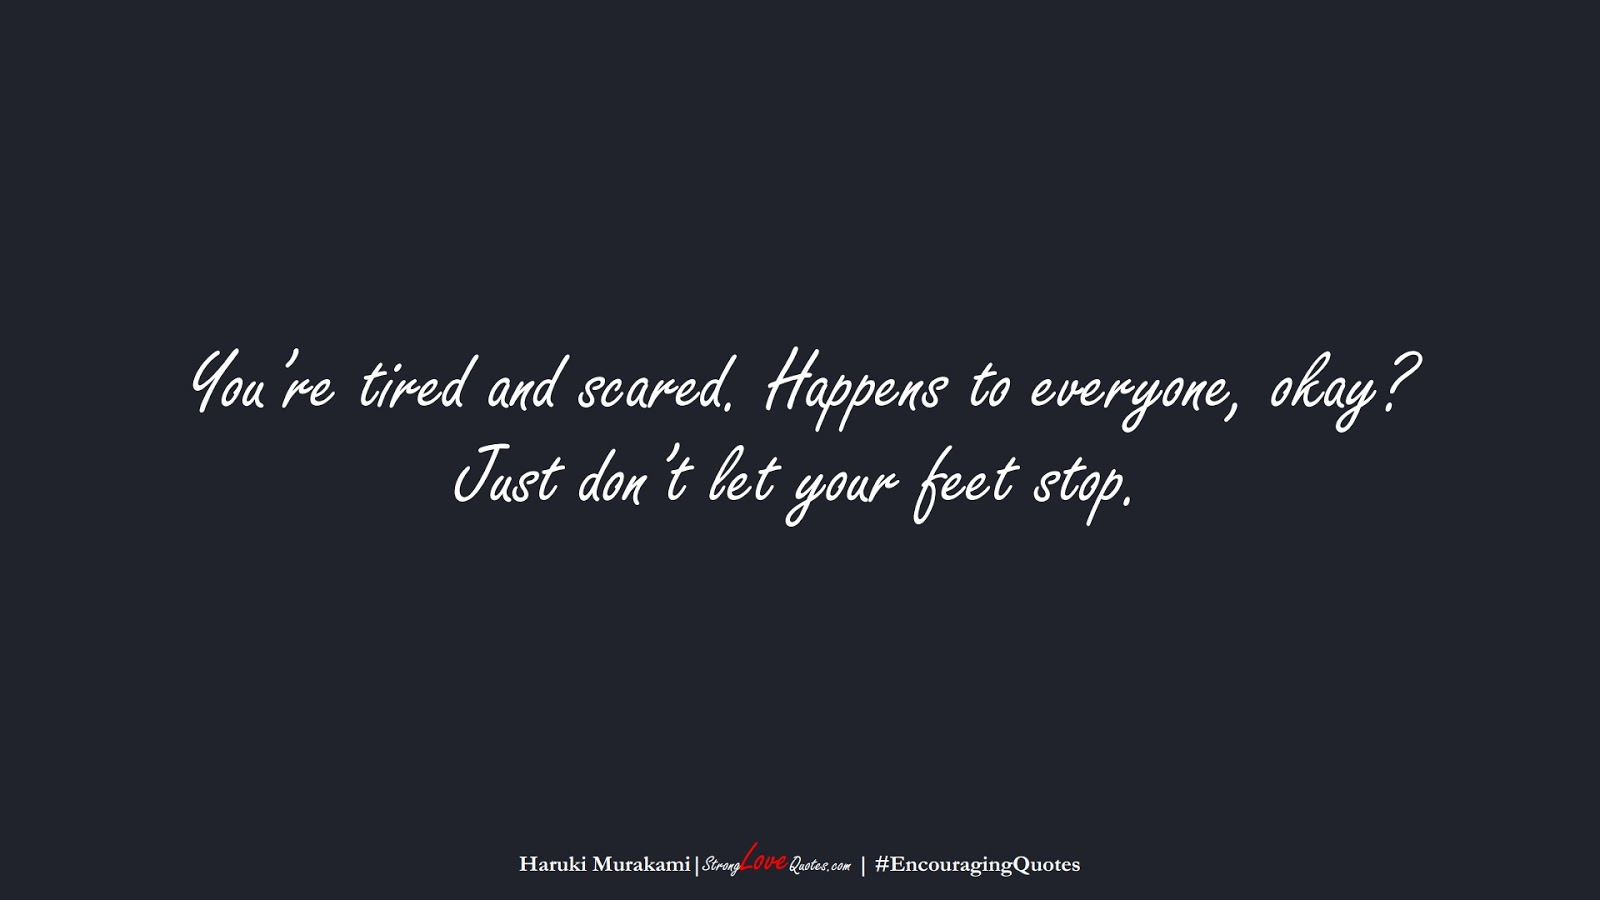 You're tired and scared. Happens to everyone, okay? Just don't let your feet stop. (Haruki Murakami);  #EncouragingQuotes